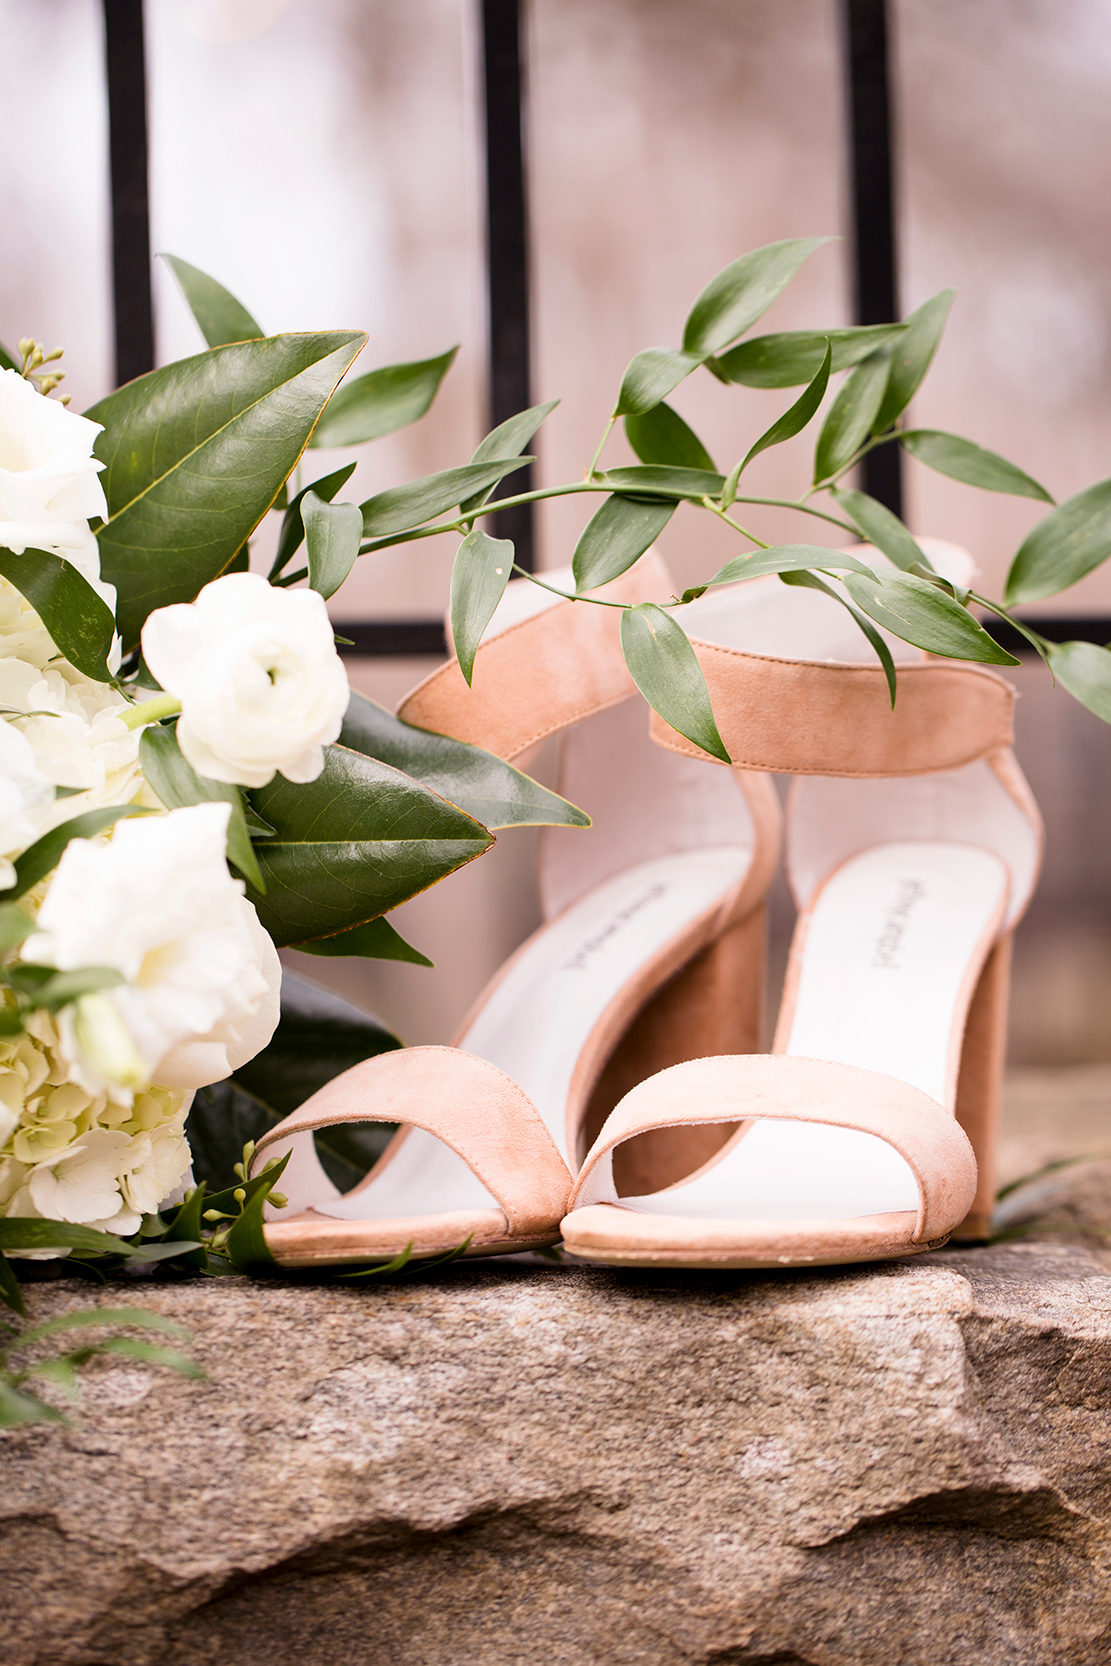 Finding the Shoe that Fits Your Wedding - Image Property of www.j-dphoto.com